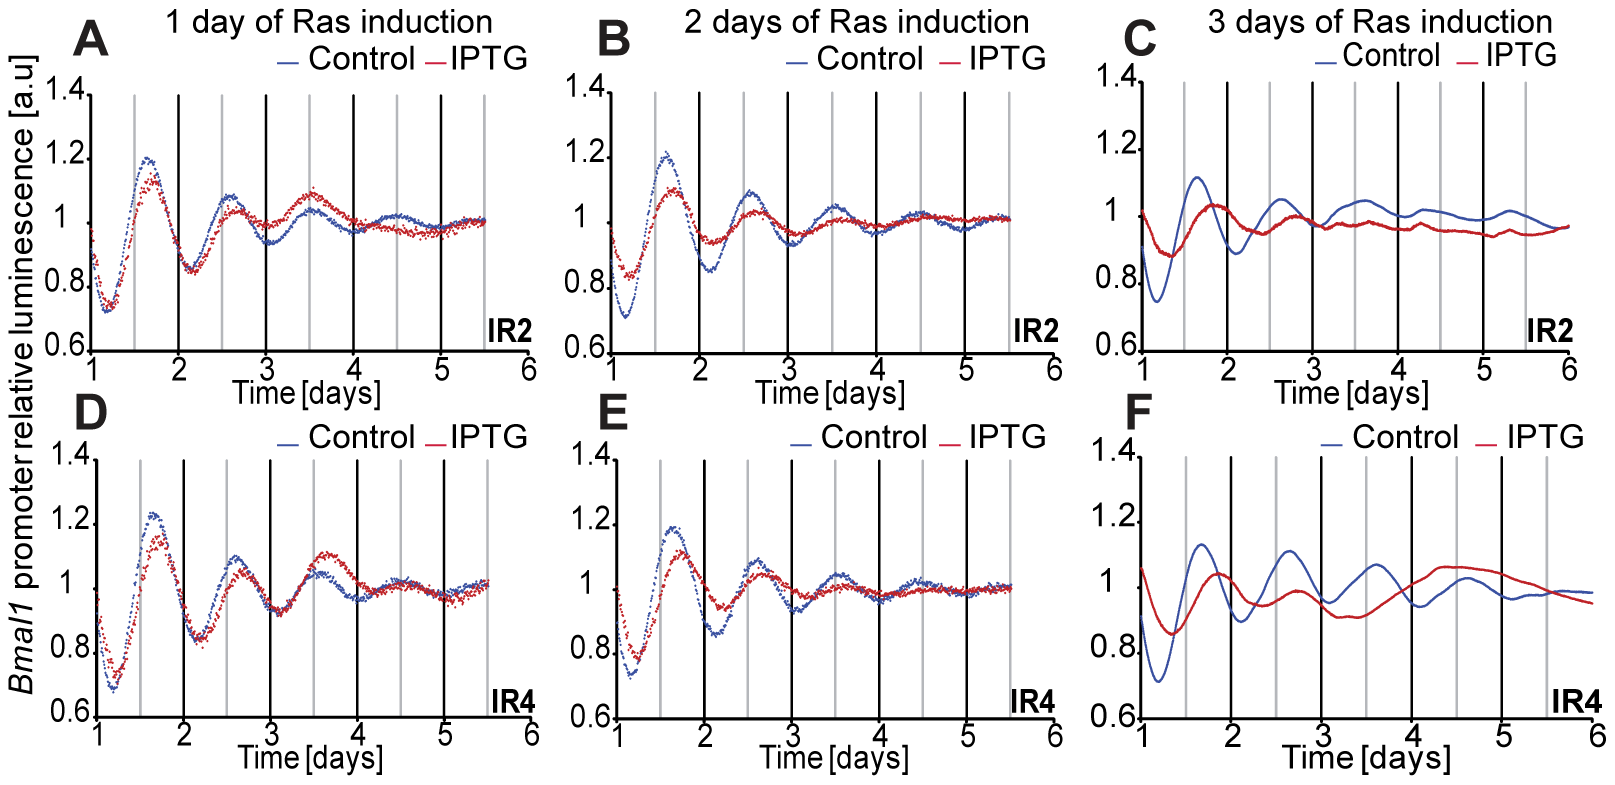 Induction of Ras expression in rat fibroblasts.